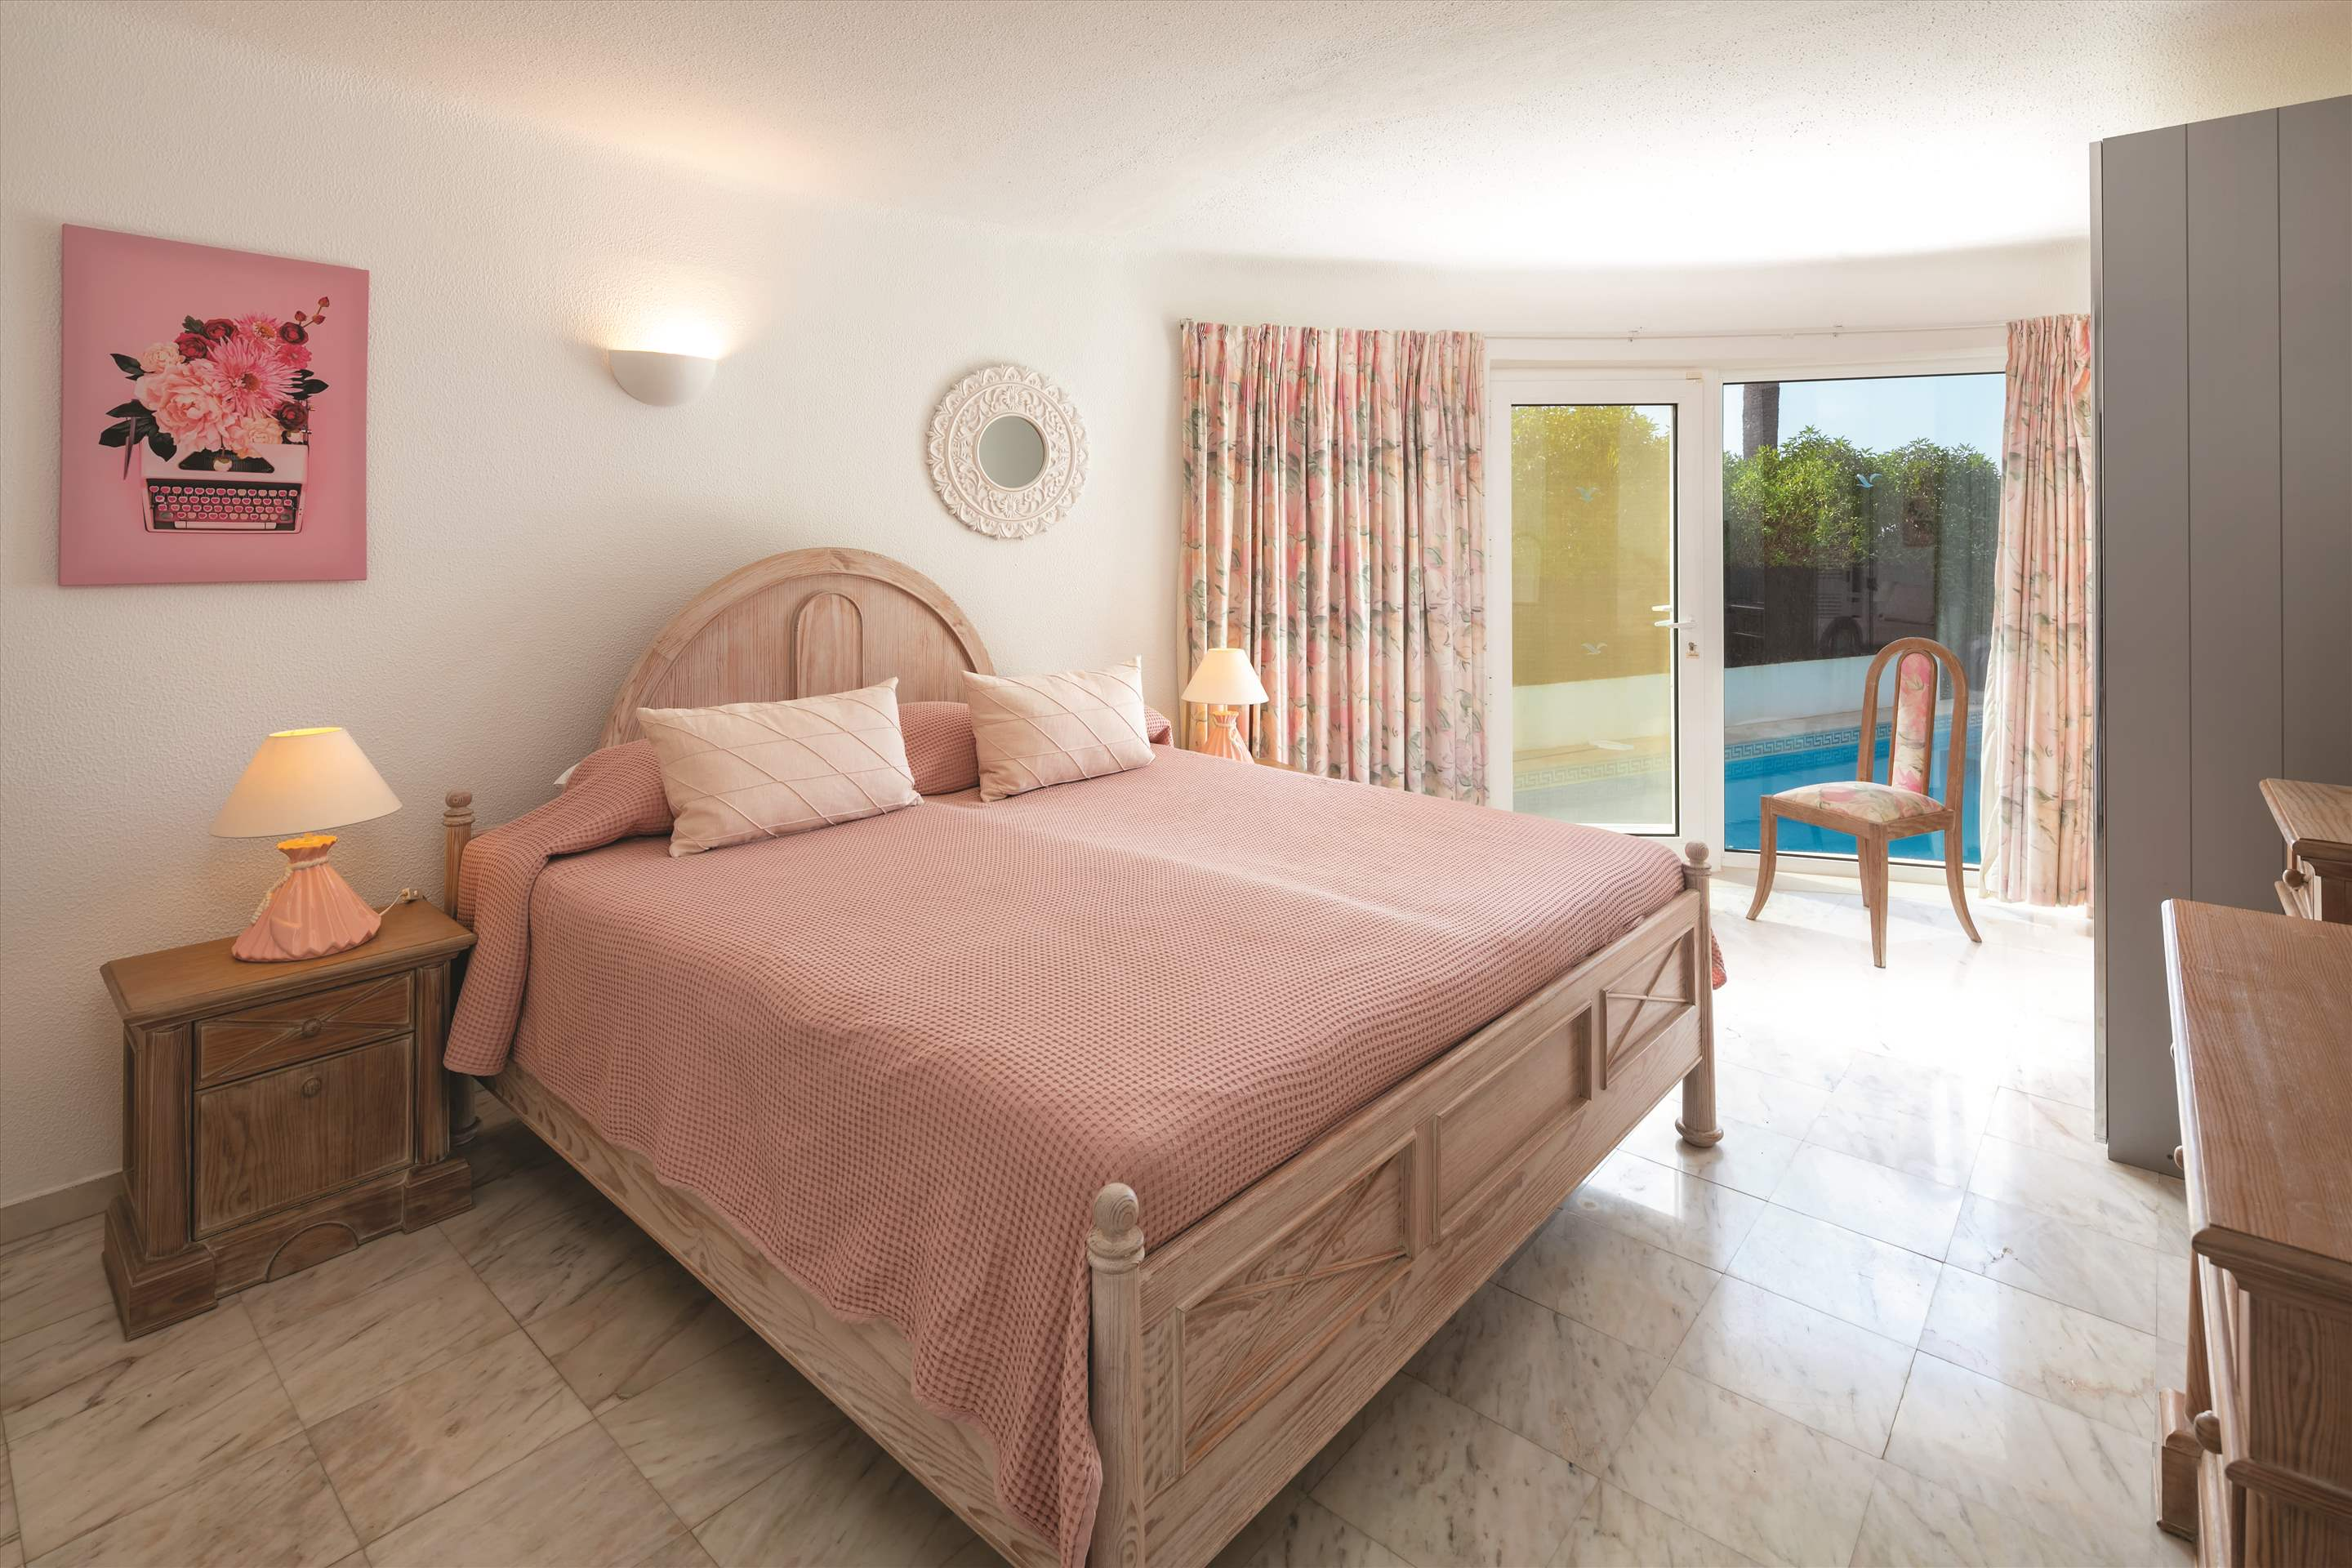 Villa Ocean Beach, 4 bedroom villa in Vale do Lobo, Algarve Photo #14